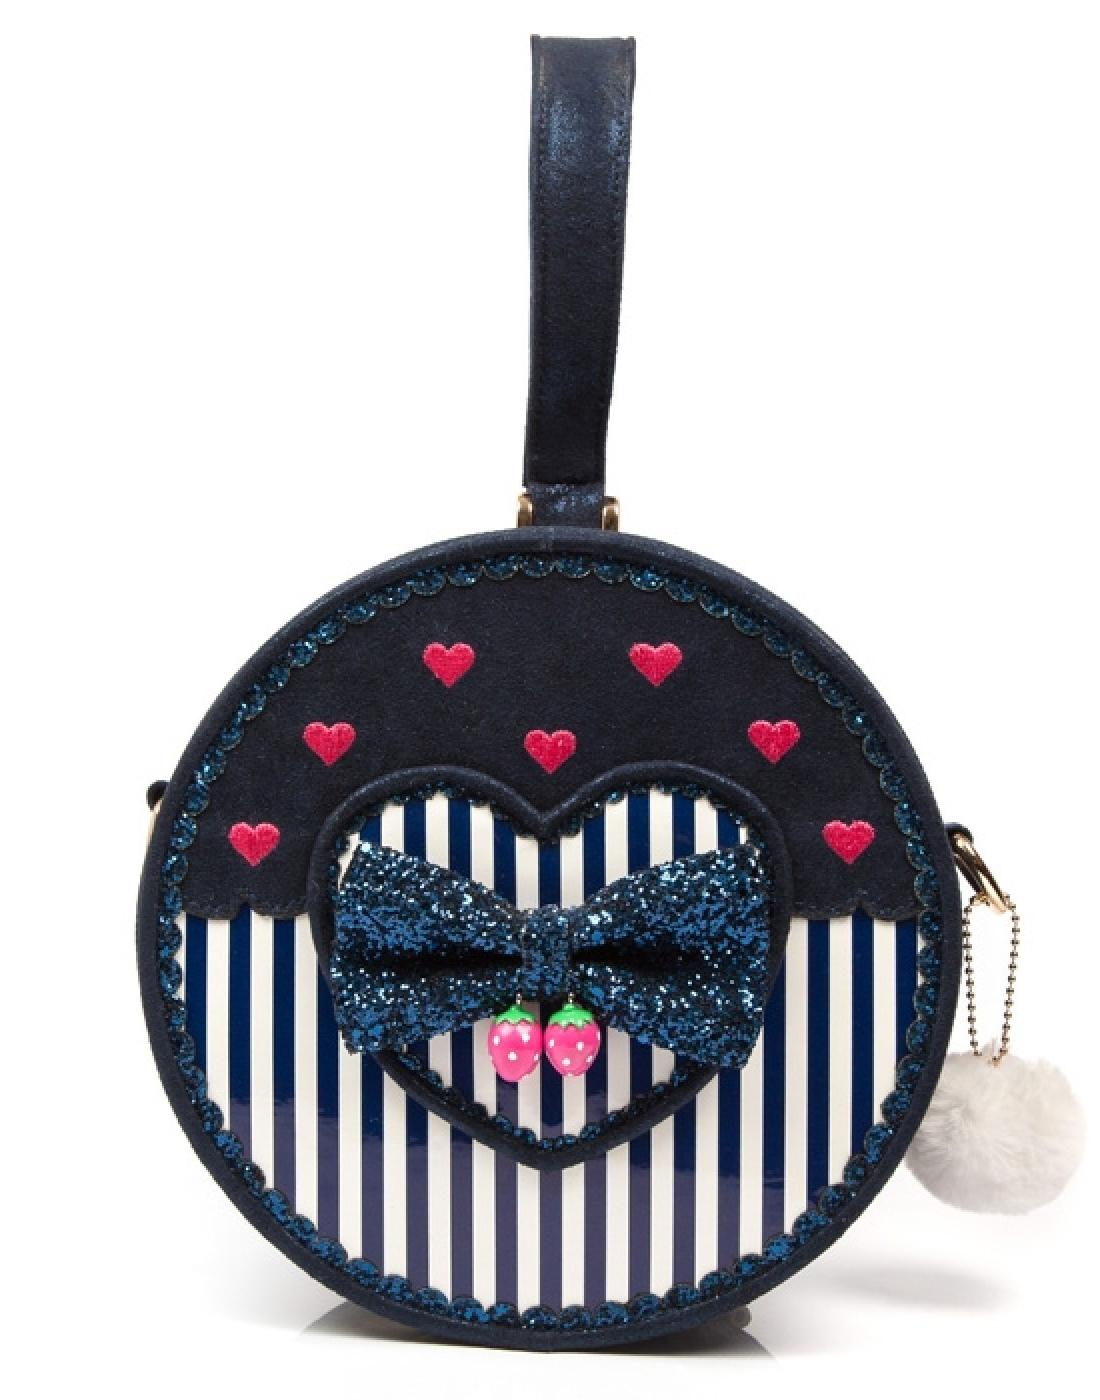 Freya IRREGULAR CHOICE Retro 60s Box Bag - Blue